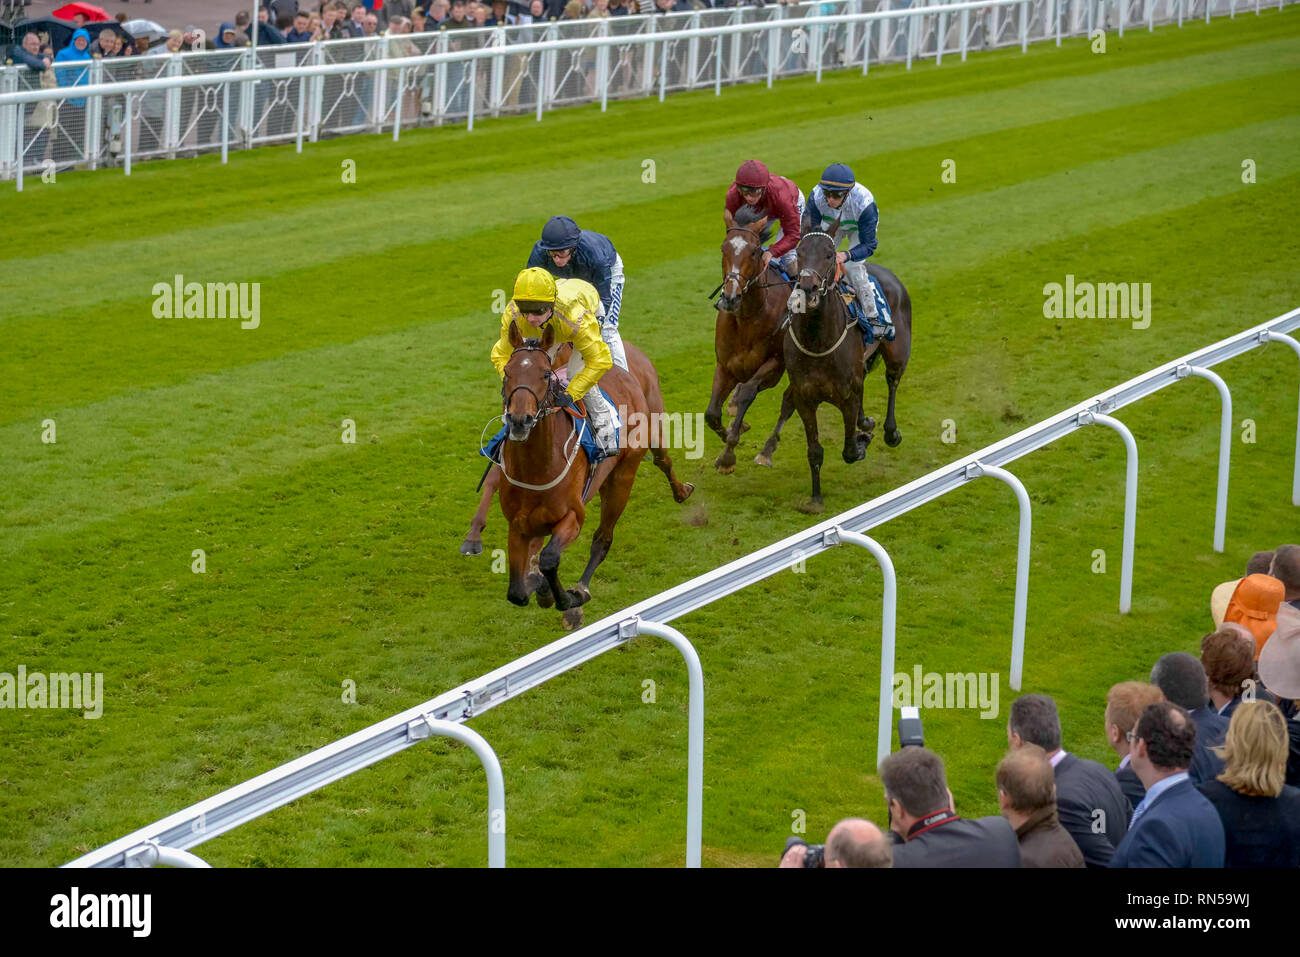 The Chester Vase race meeting at Chester Races. - Stock Image